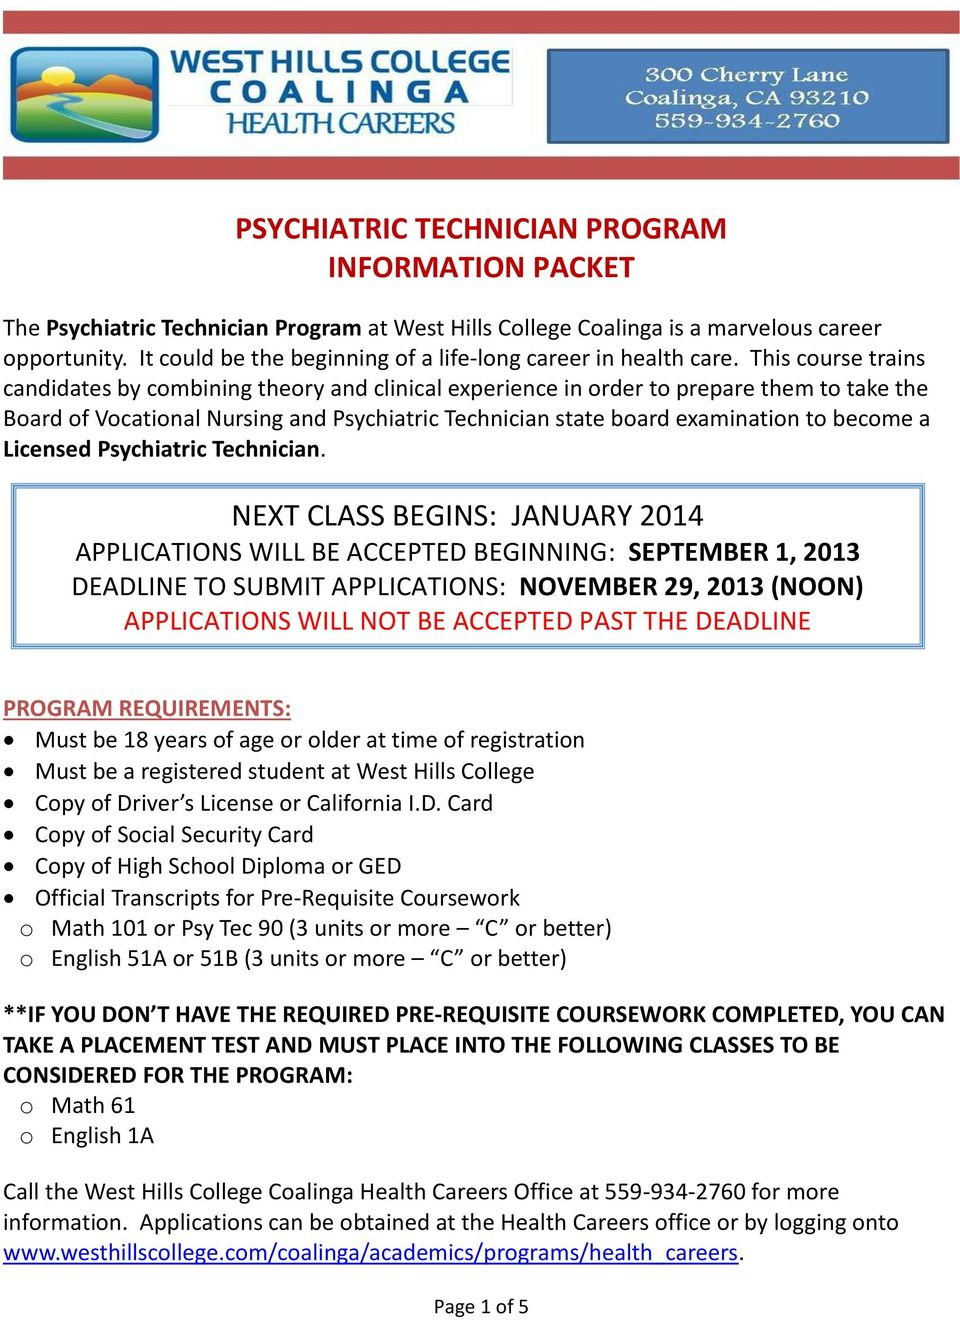 Psychiatric Technician Program Information Packet Pdf